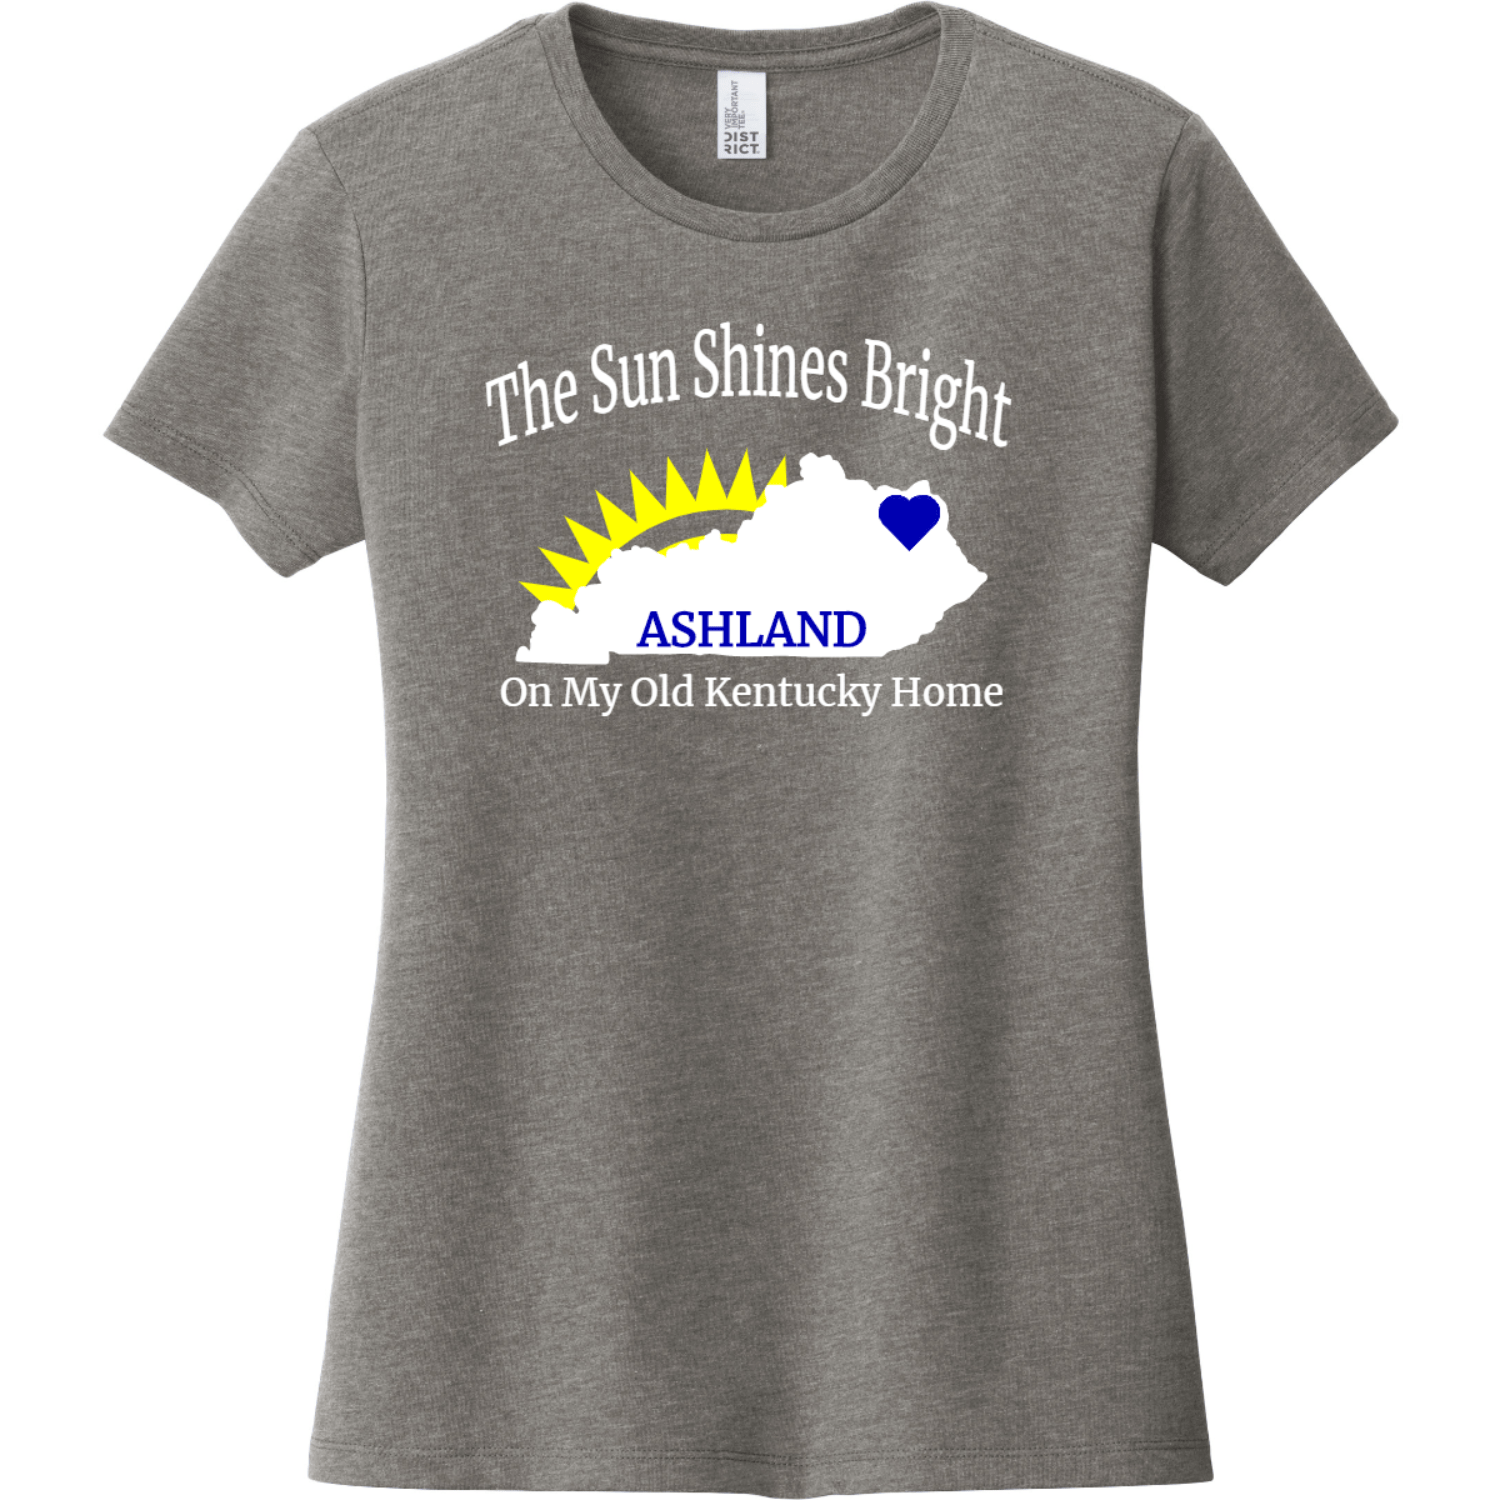 Ashland Kentucky The Sun Shines Bright Ladies T Shirt Gray Frost District Women's Very Important Tee DT6002